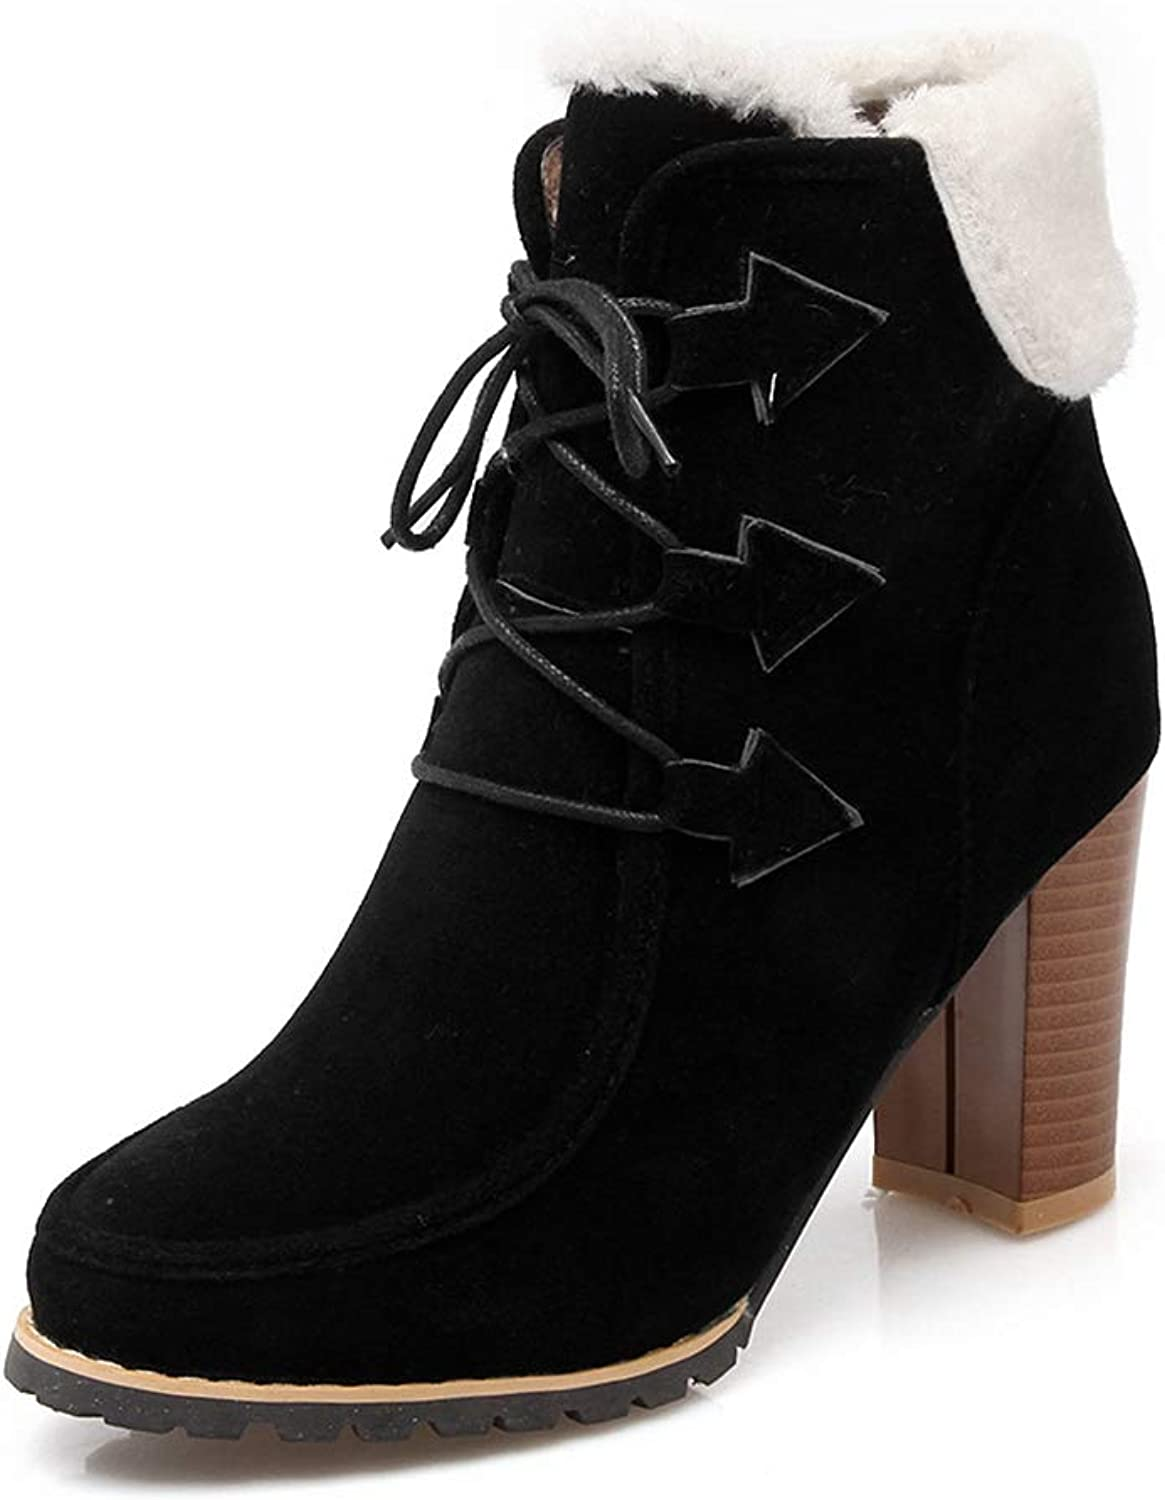 CYBLING Womens Shearling Cuffed Platform Bootie Round Toe Stacked Lug Heel Lace Up Ankle Boots